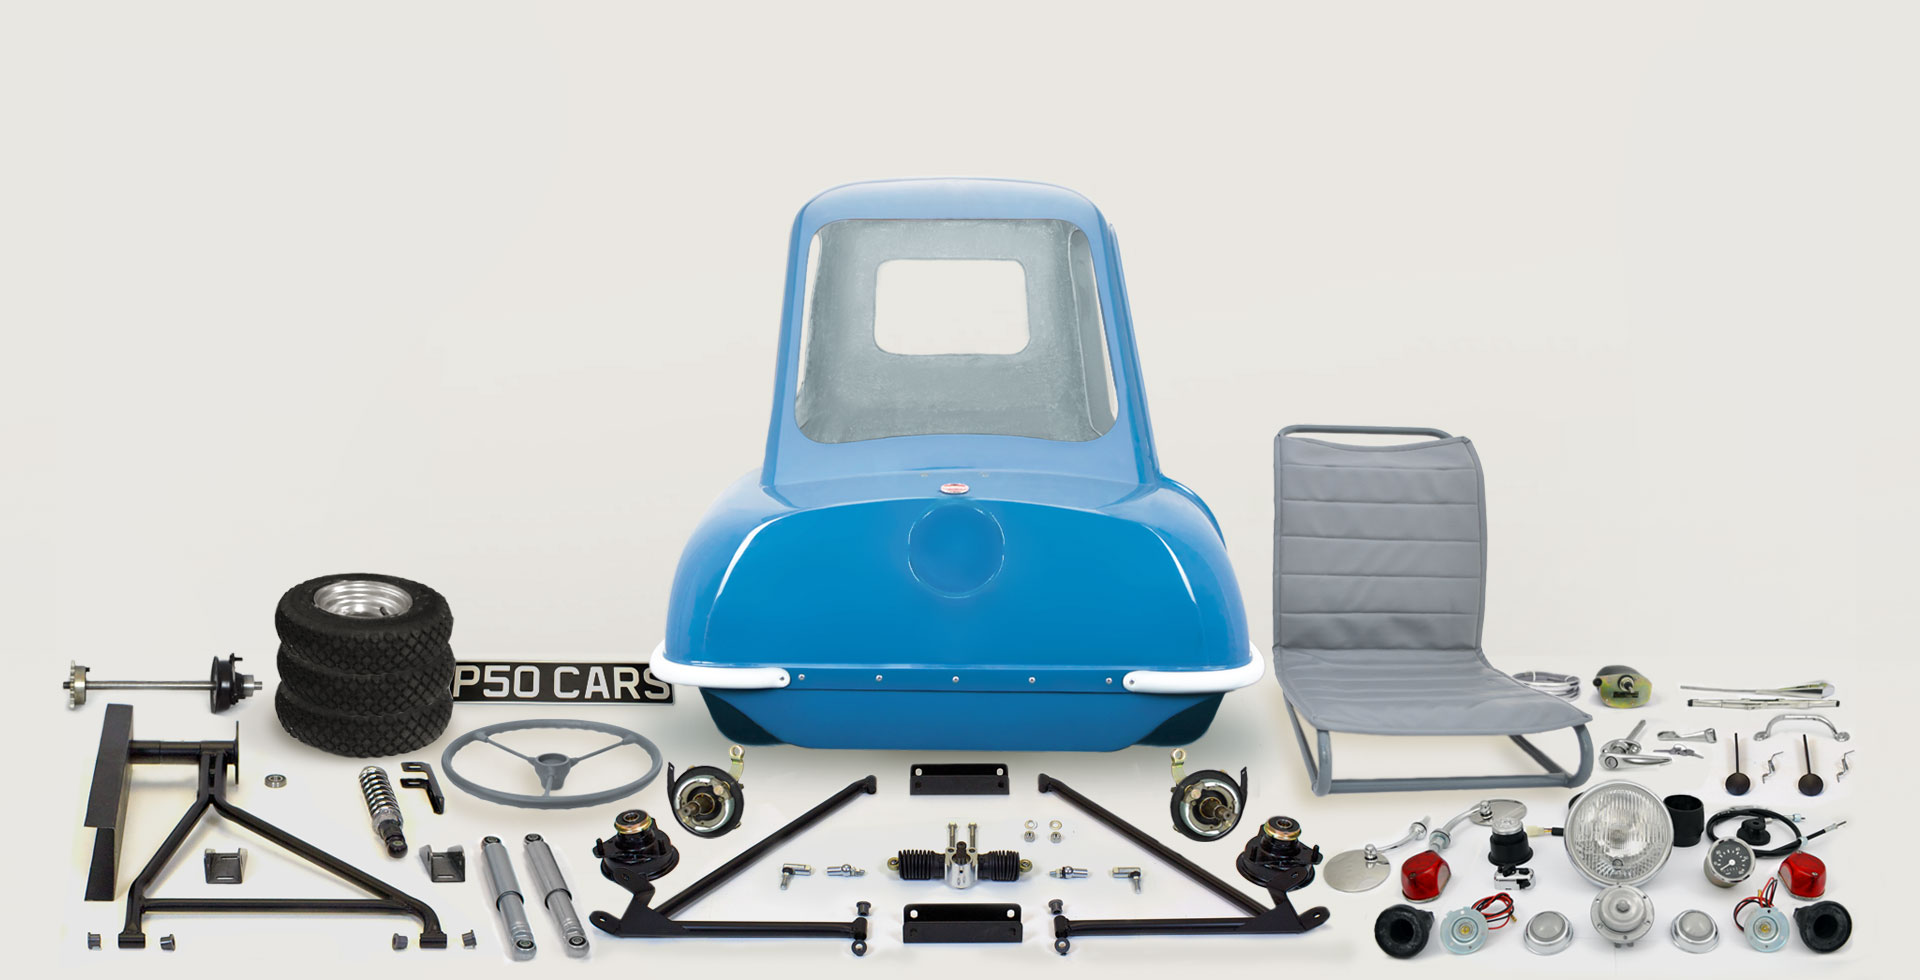 P50-Car-Replica-Kit-Parts-Spares-1962-Blue Isle of Man